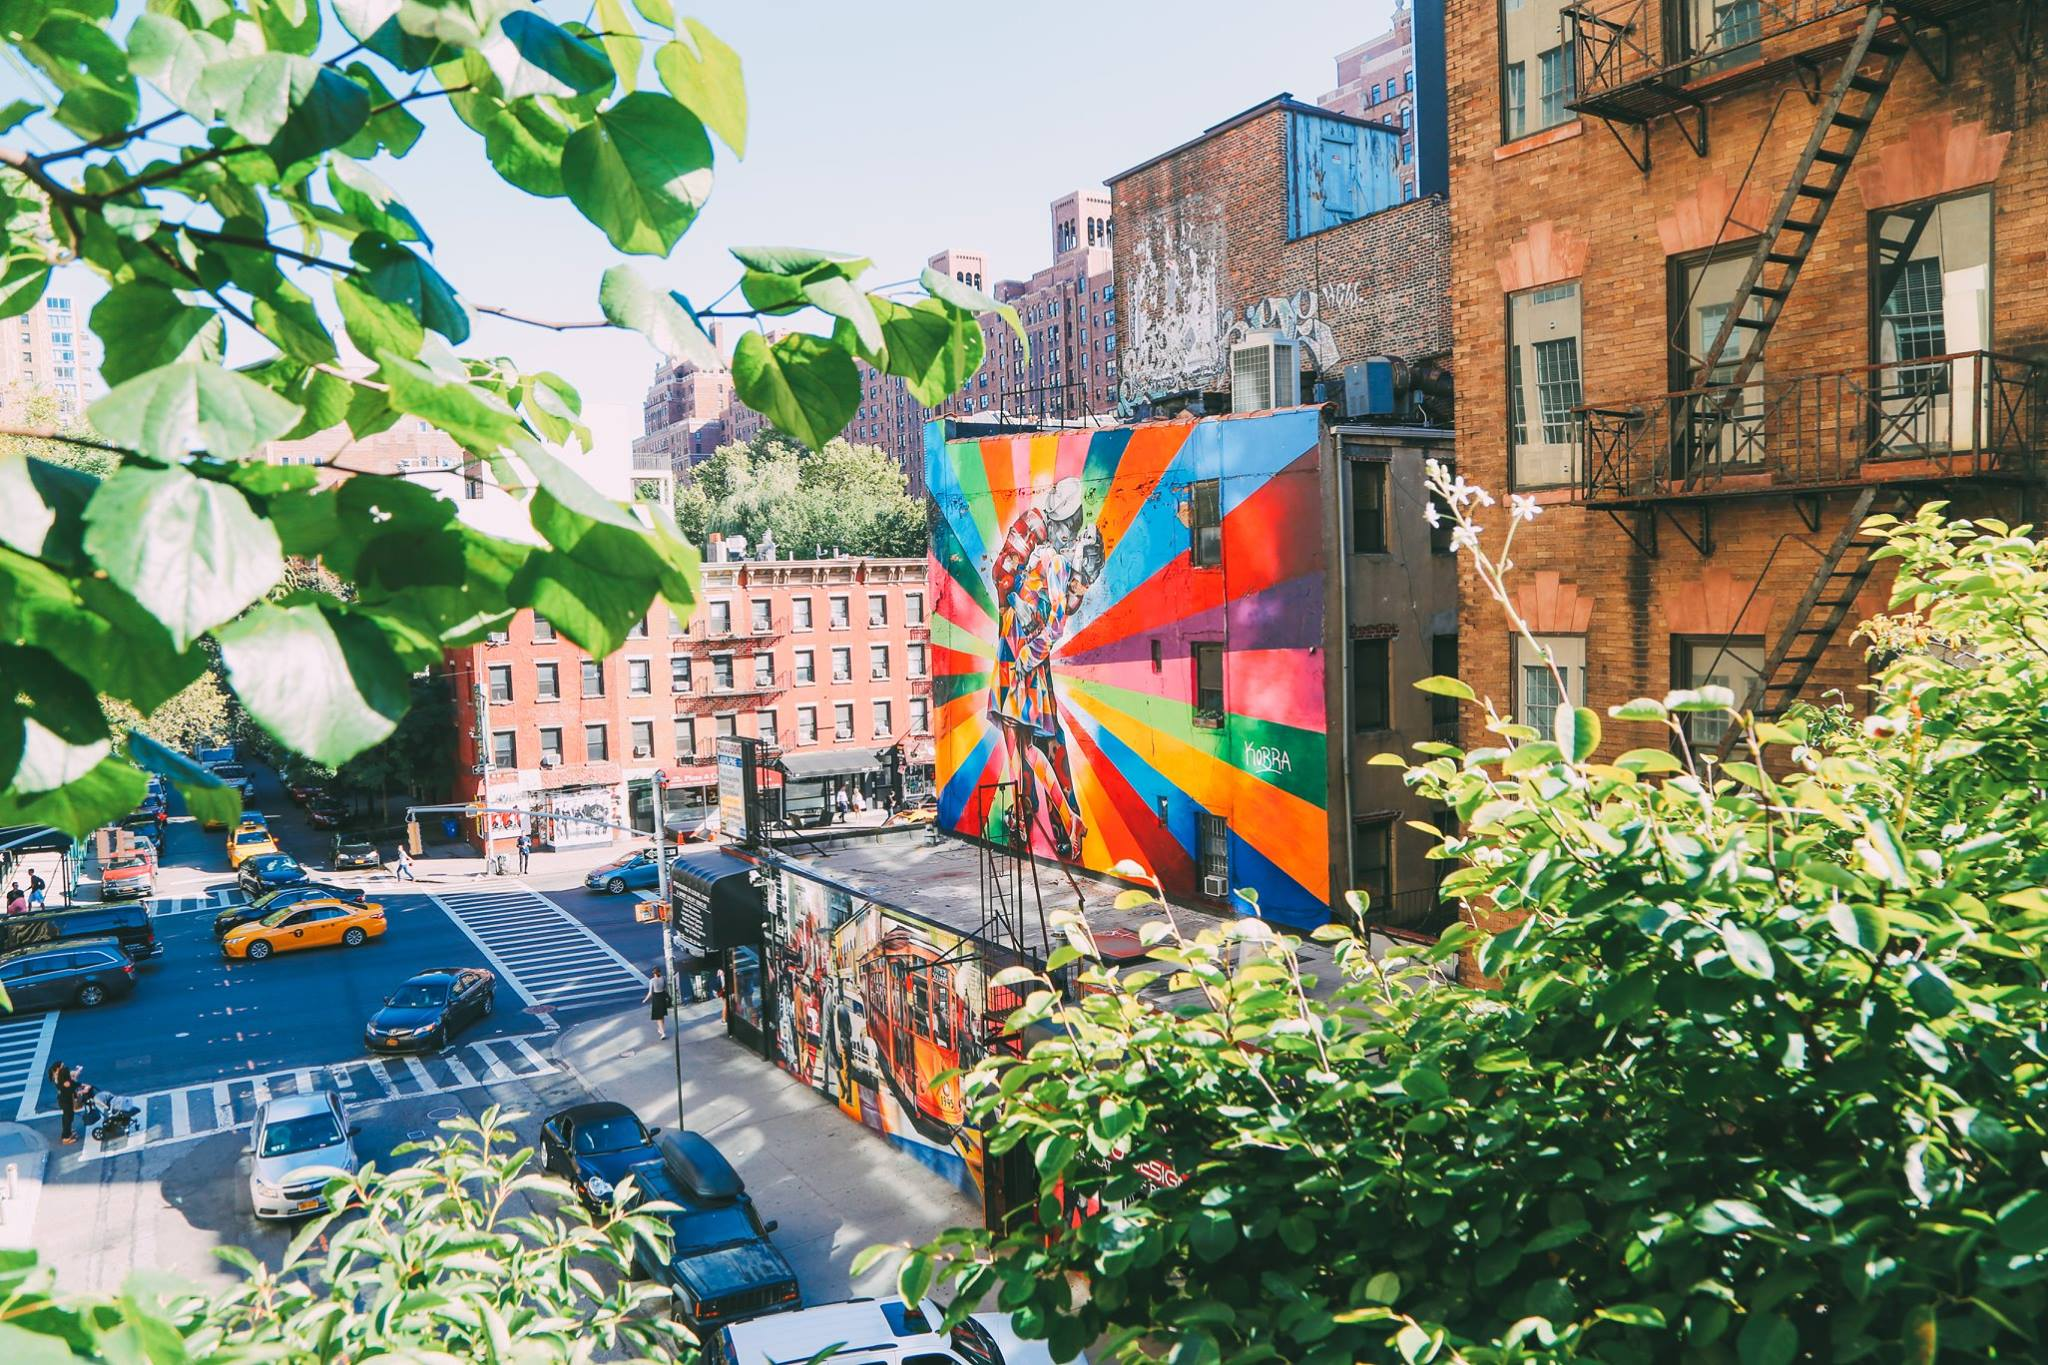 New York Diary: The High Line, Lego House And New York Fashion Week (4)